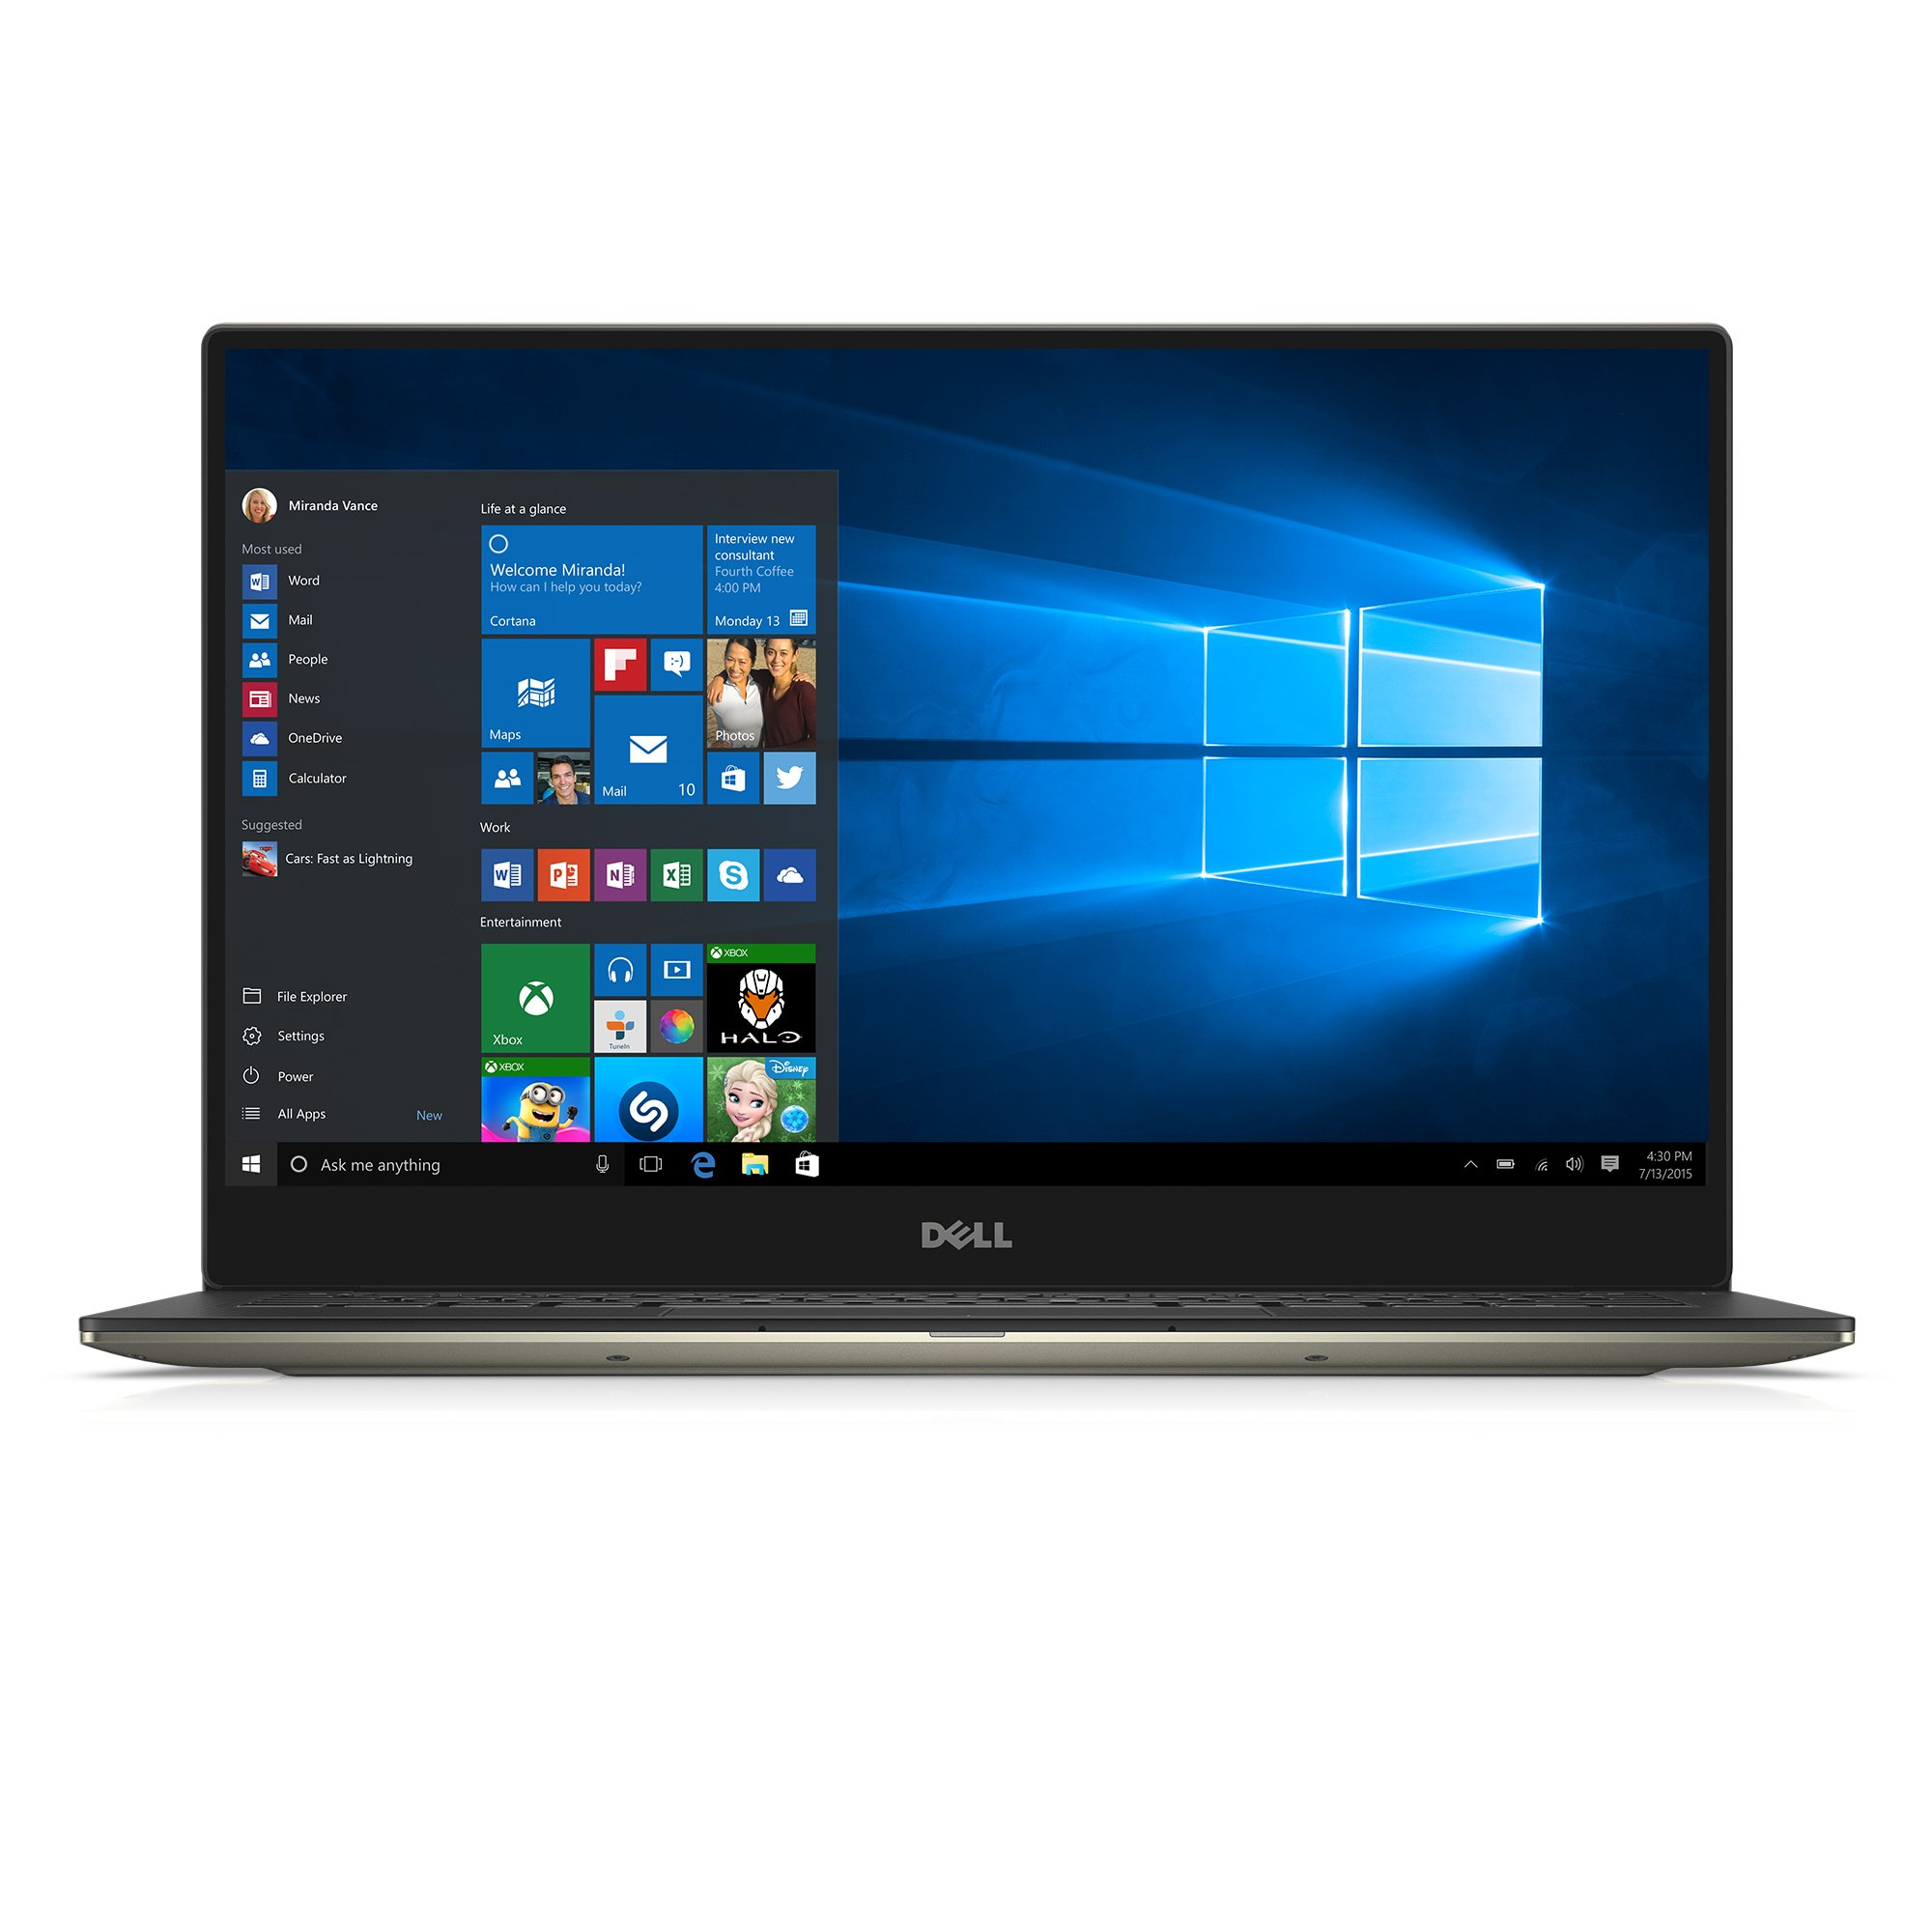 Refurbished Dell XPS 13 XPS9350-5342GLD 13.3-Inch QHD+ Touchscreen Laptop (6th Generation Intel Core i7, 8 GB RAM, 256 GB SSD, Win 10, Microsoft Signature Image), Gold